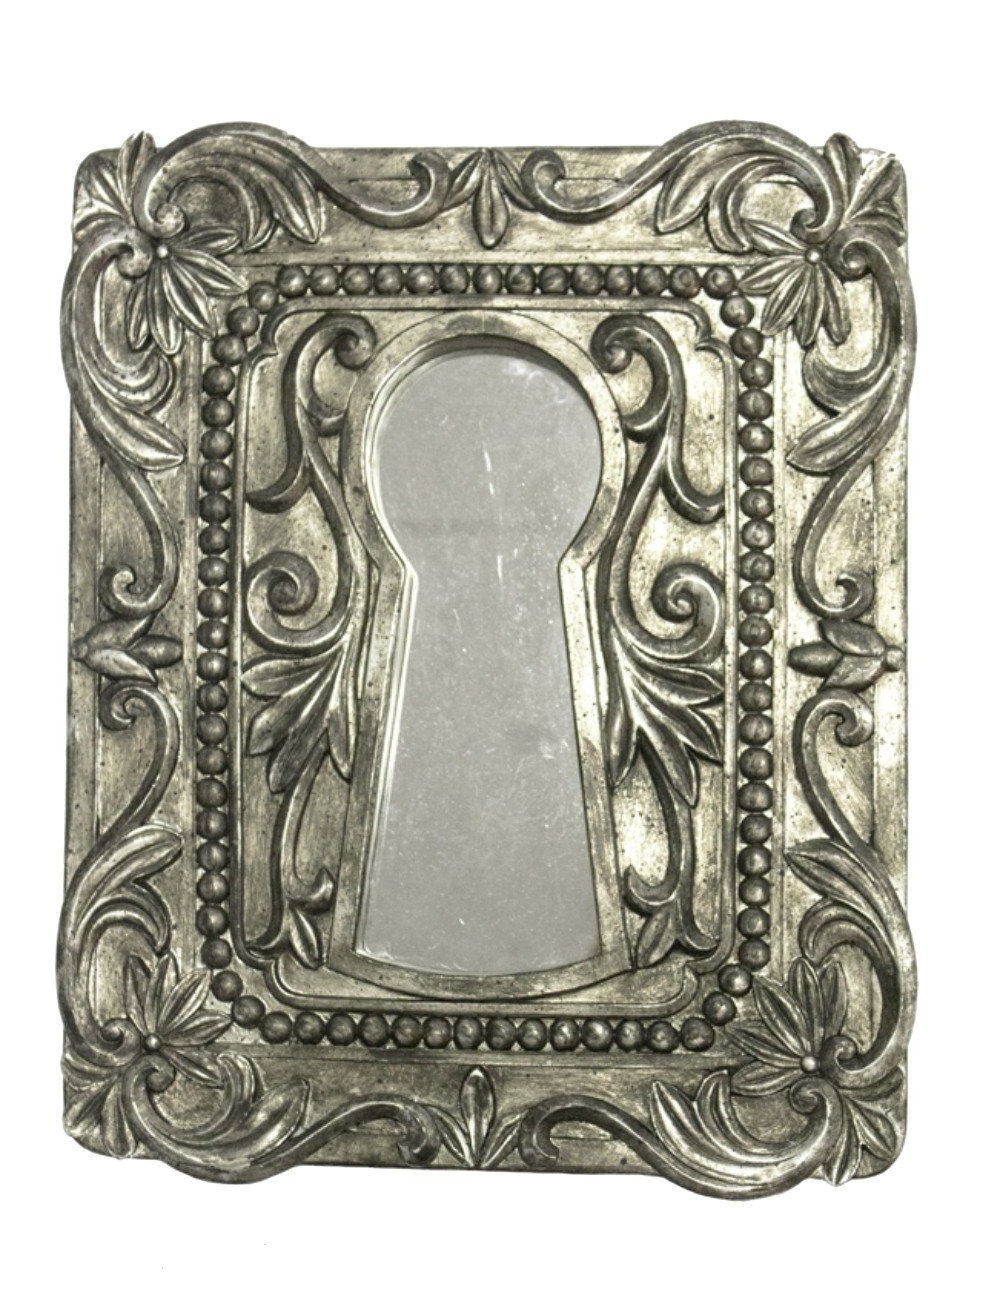 Old Fashioned Wall Mirrors In Fashionable Amazon: Aged Antique Finish Silver Keyhole Wall Mirror Accent (View 15 of 20)